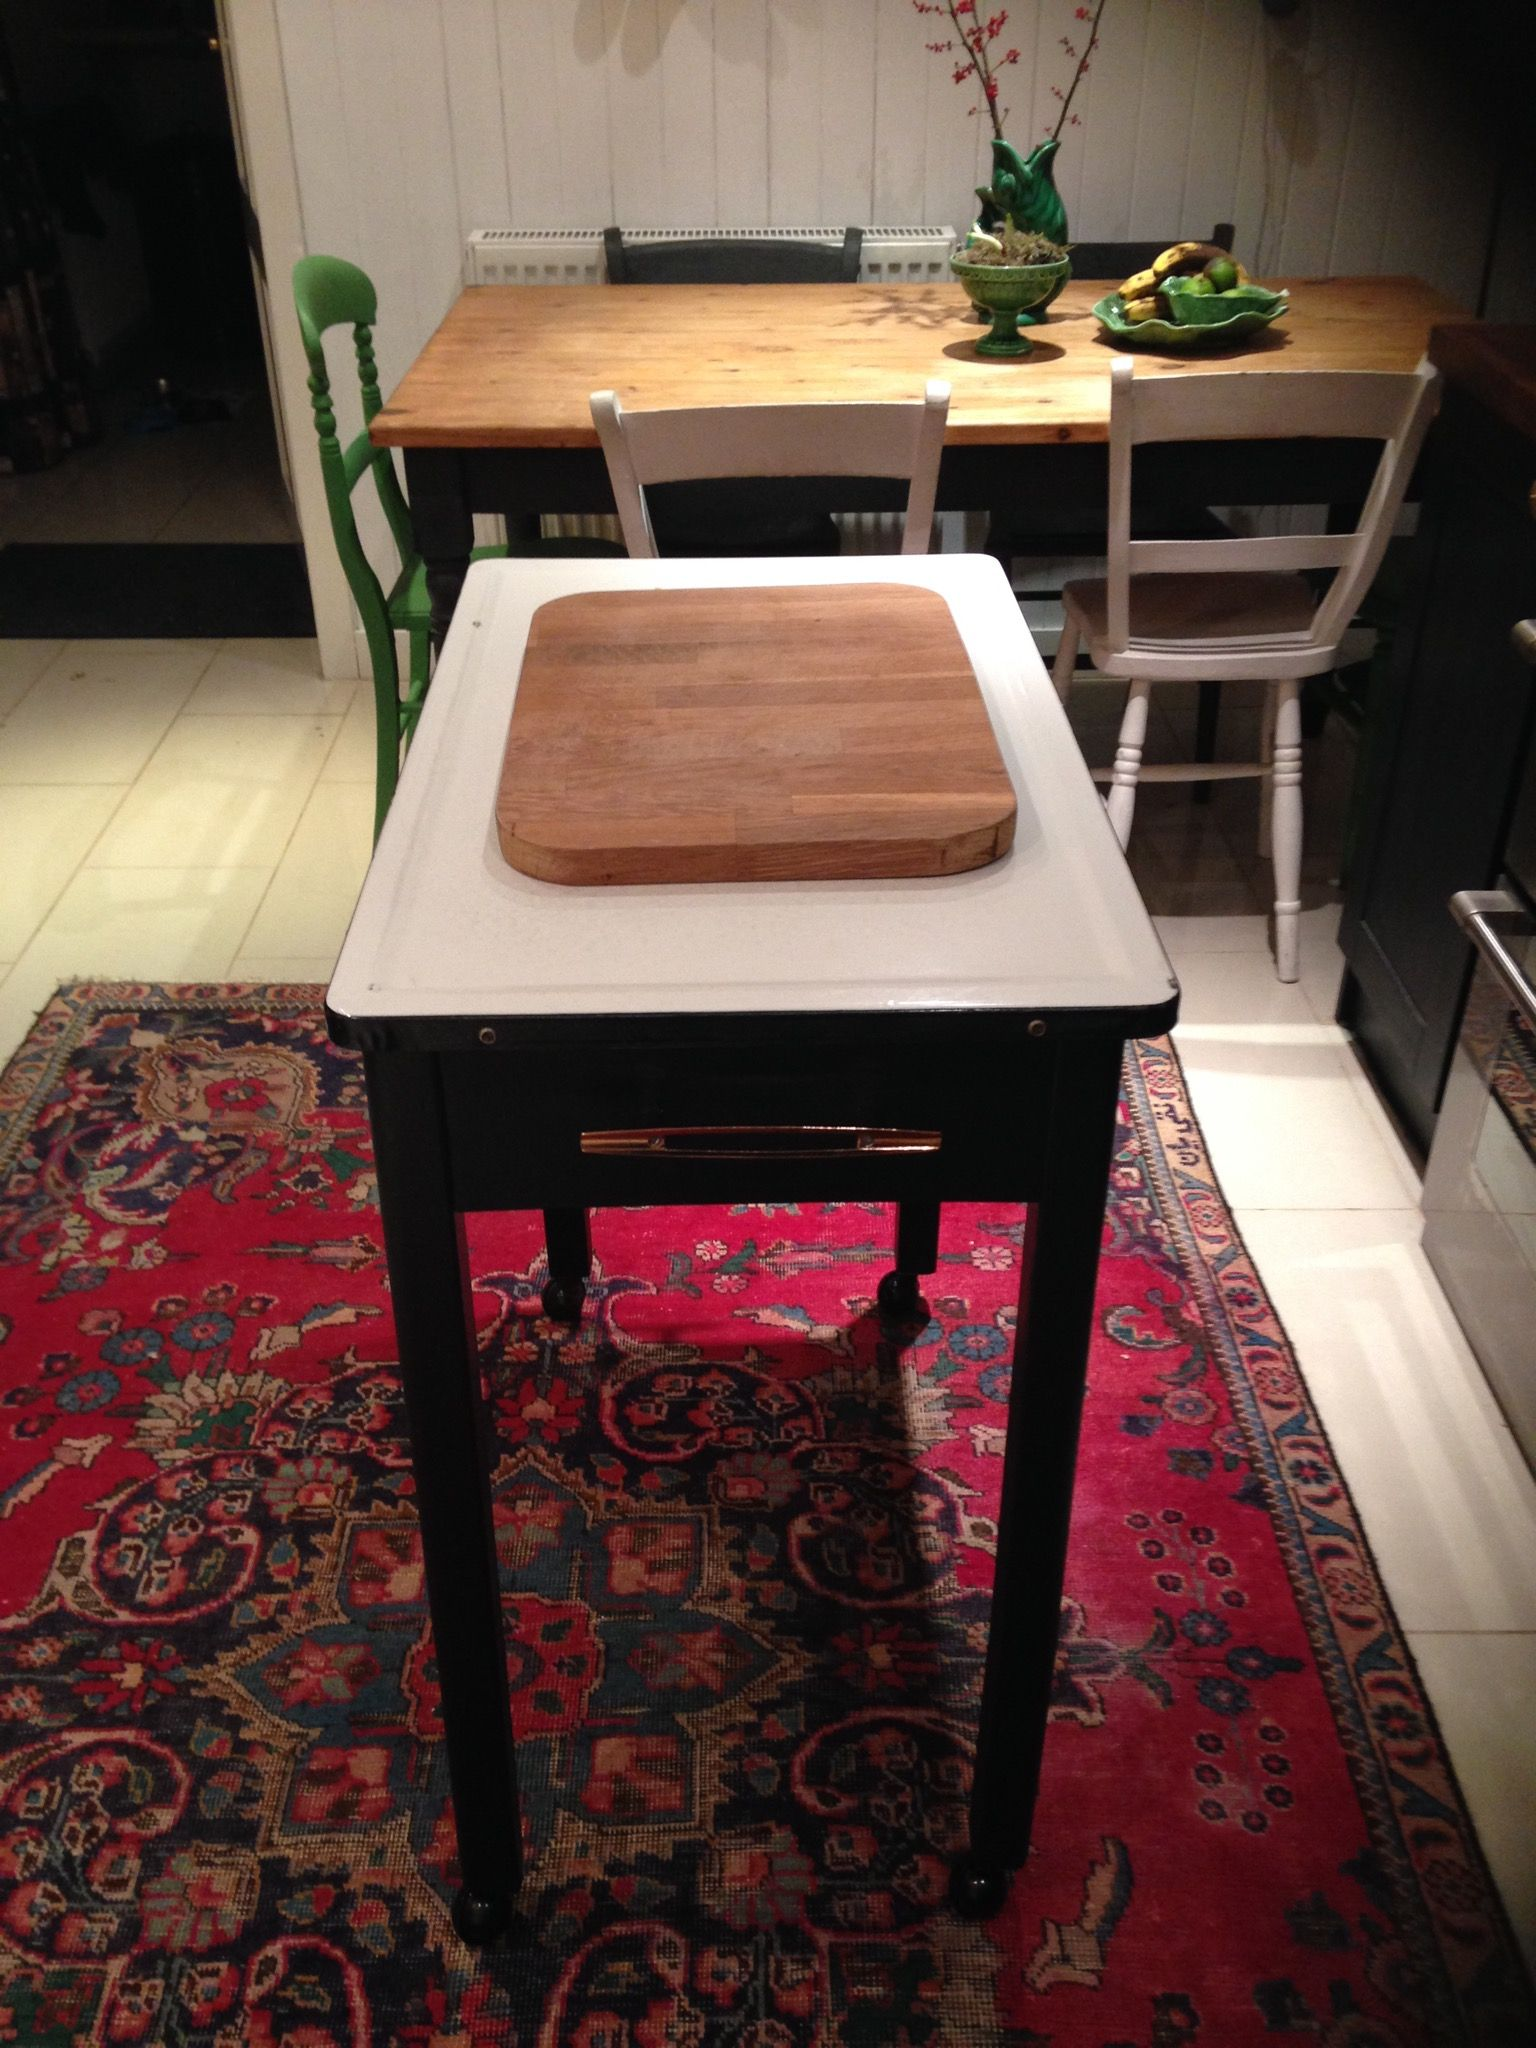 New kitchen island, recycled an ancient enamel top table found in skip.